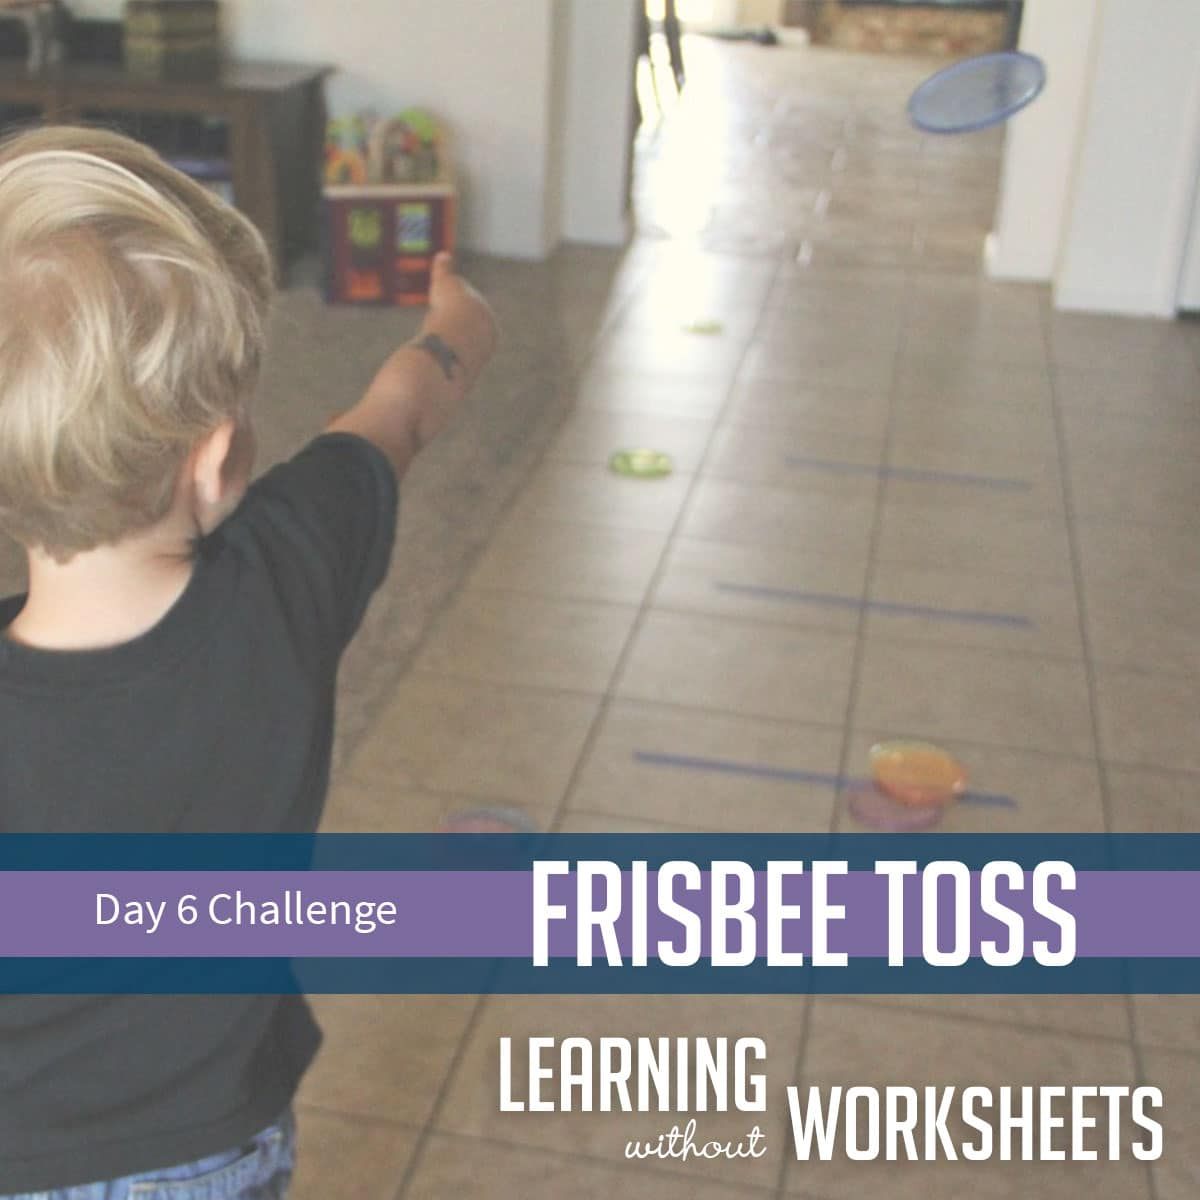 Learning Without Worksheets: Day 6!